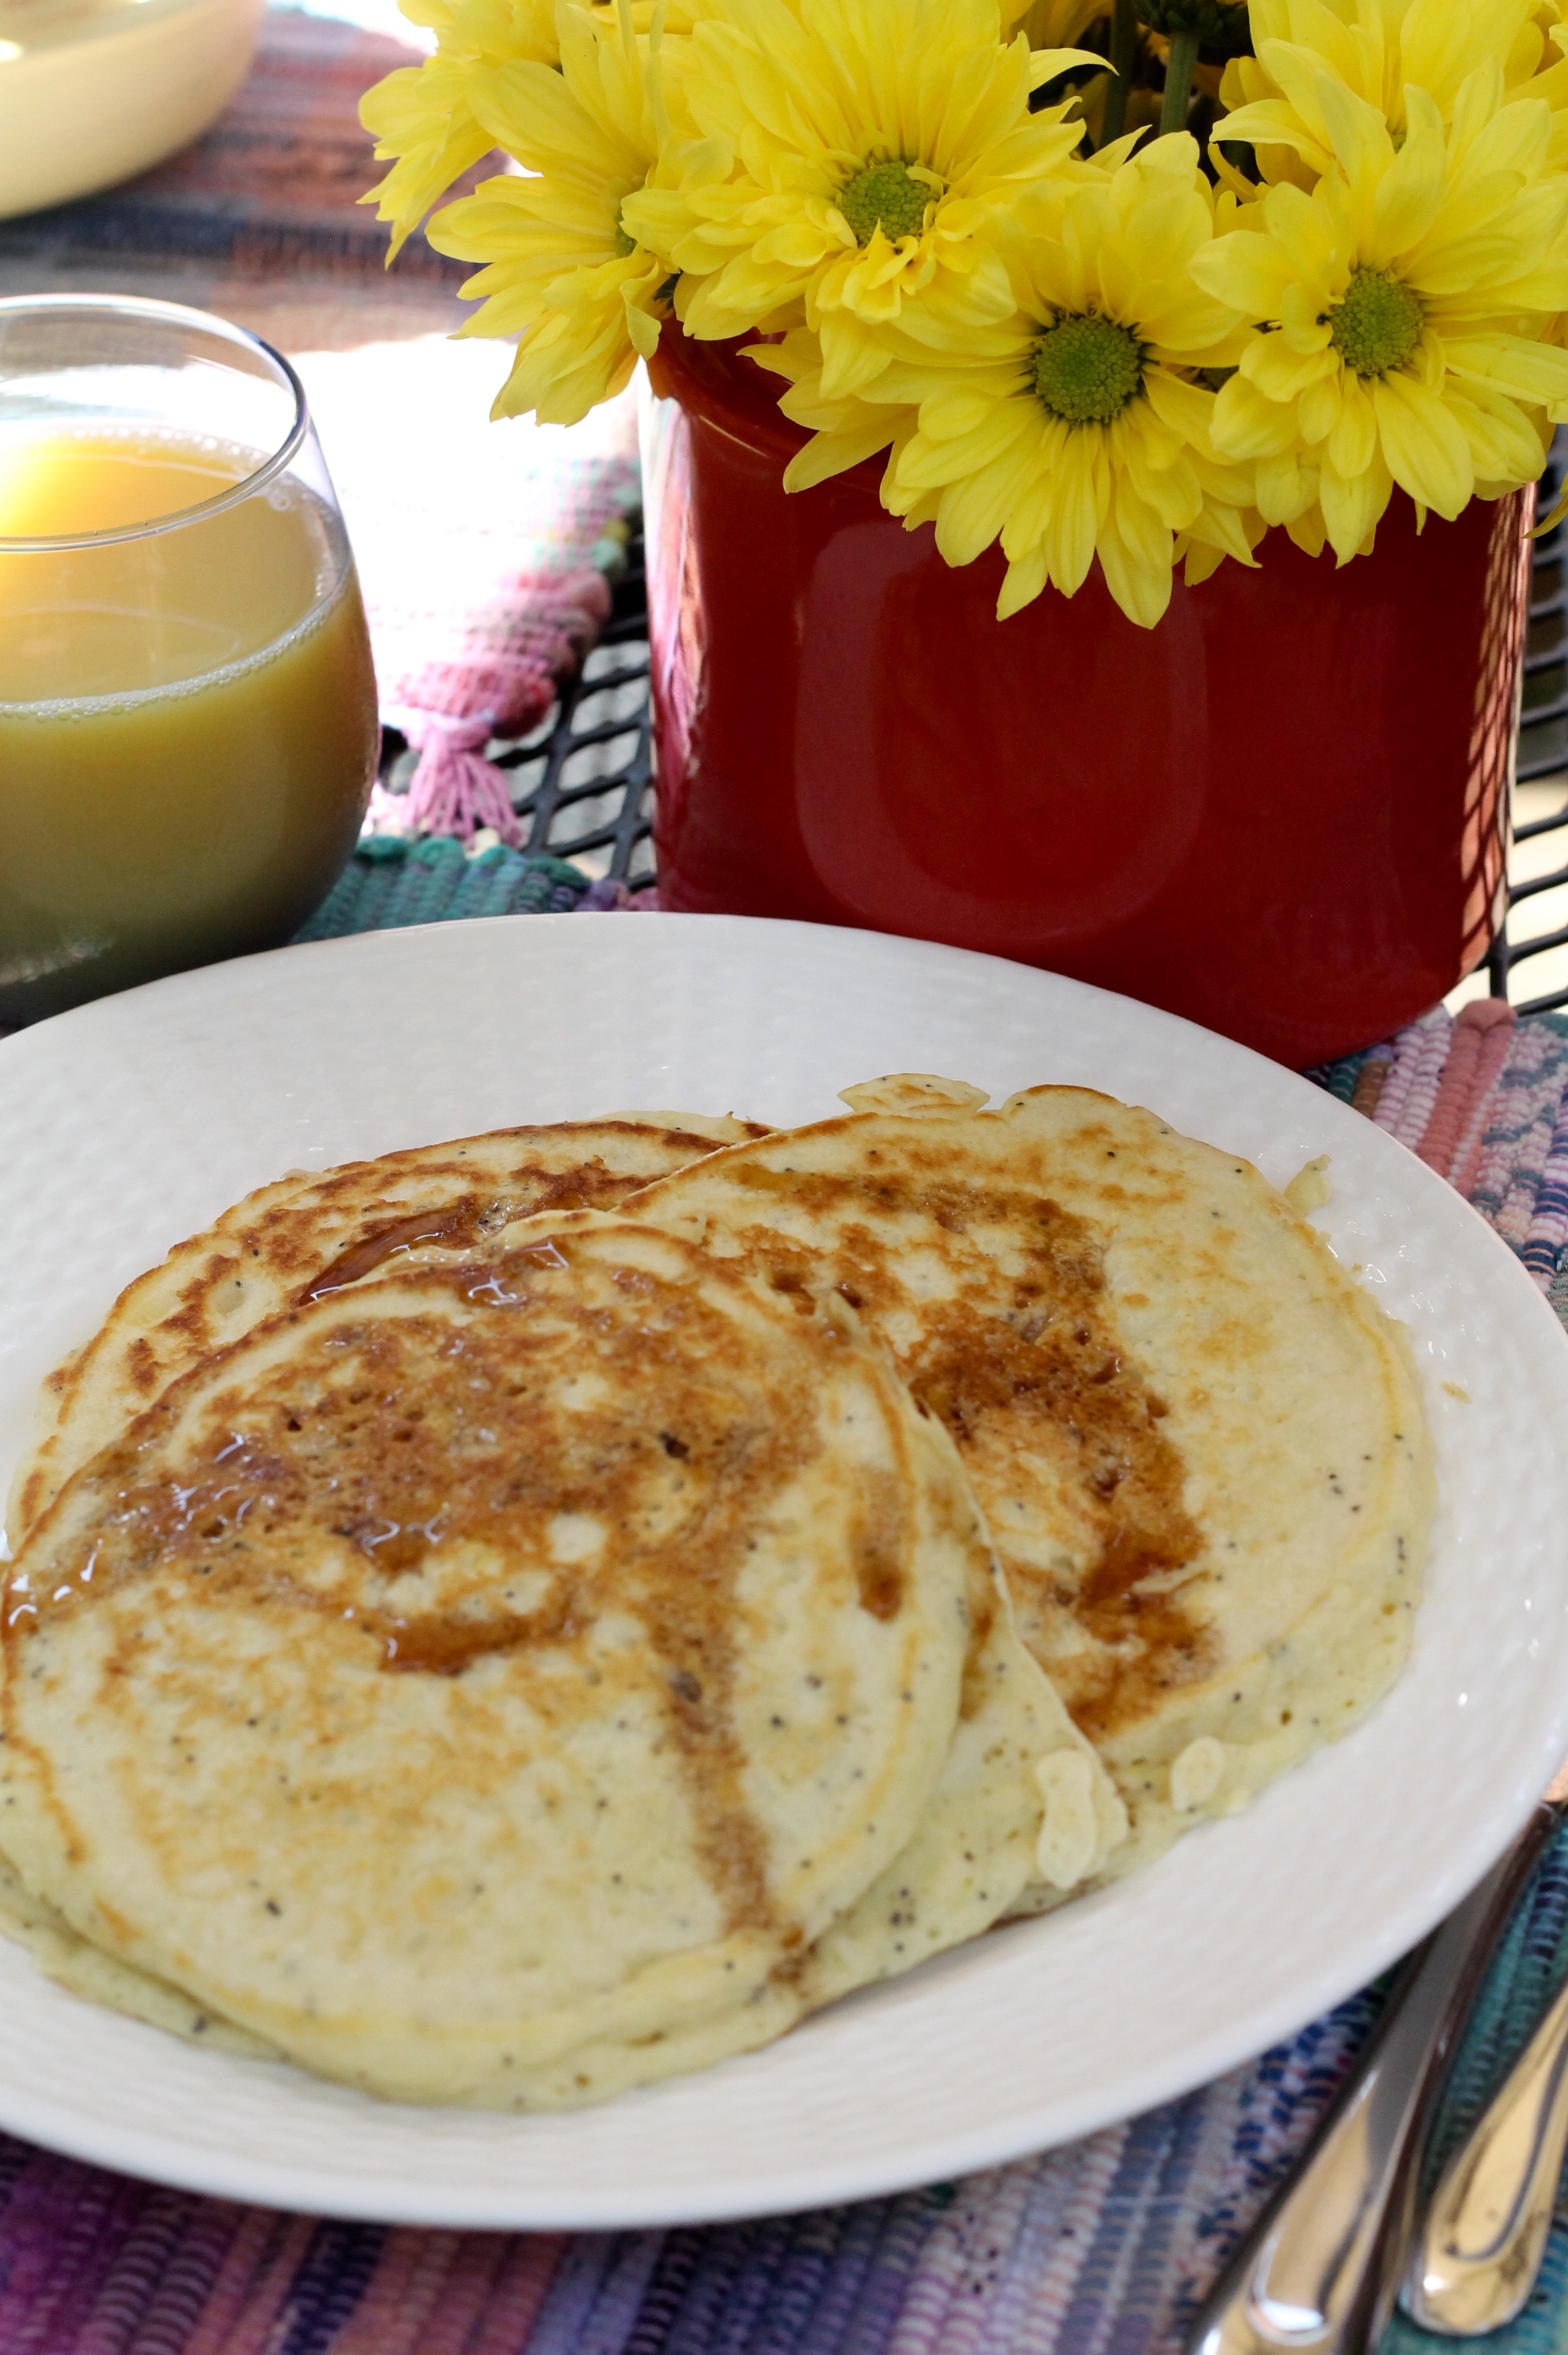 Lemon poppy seed pancakes - The 2 Seasons